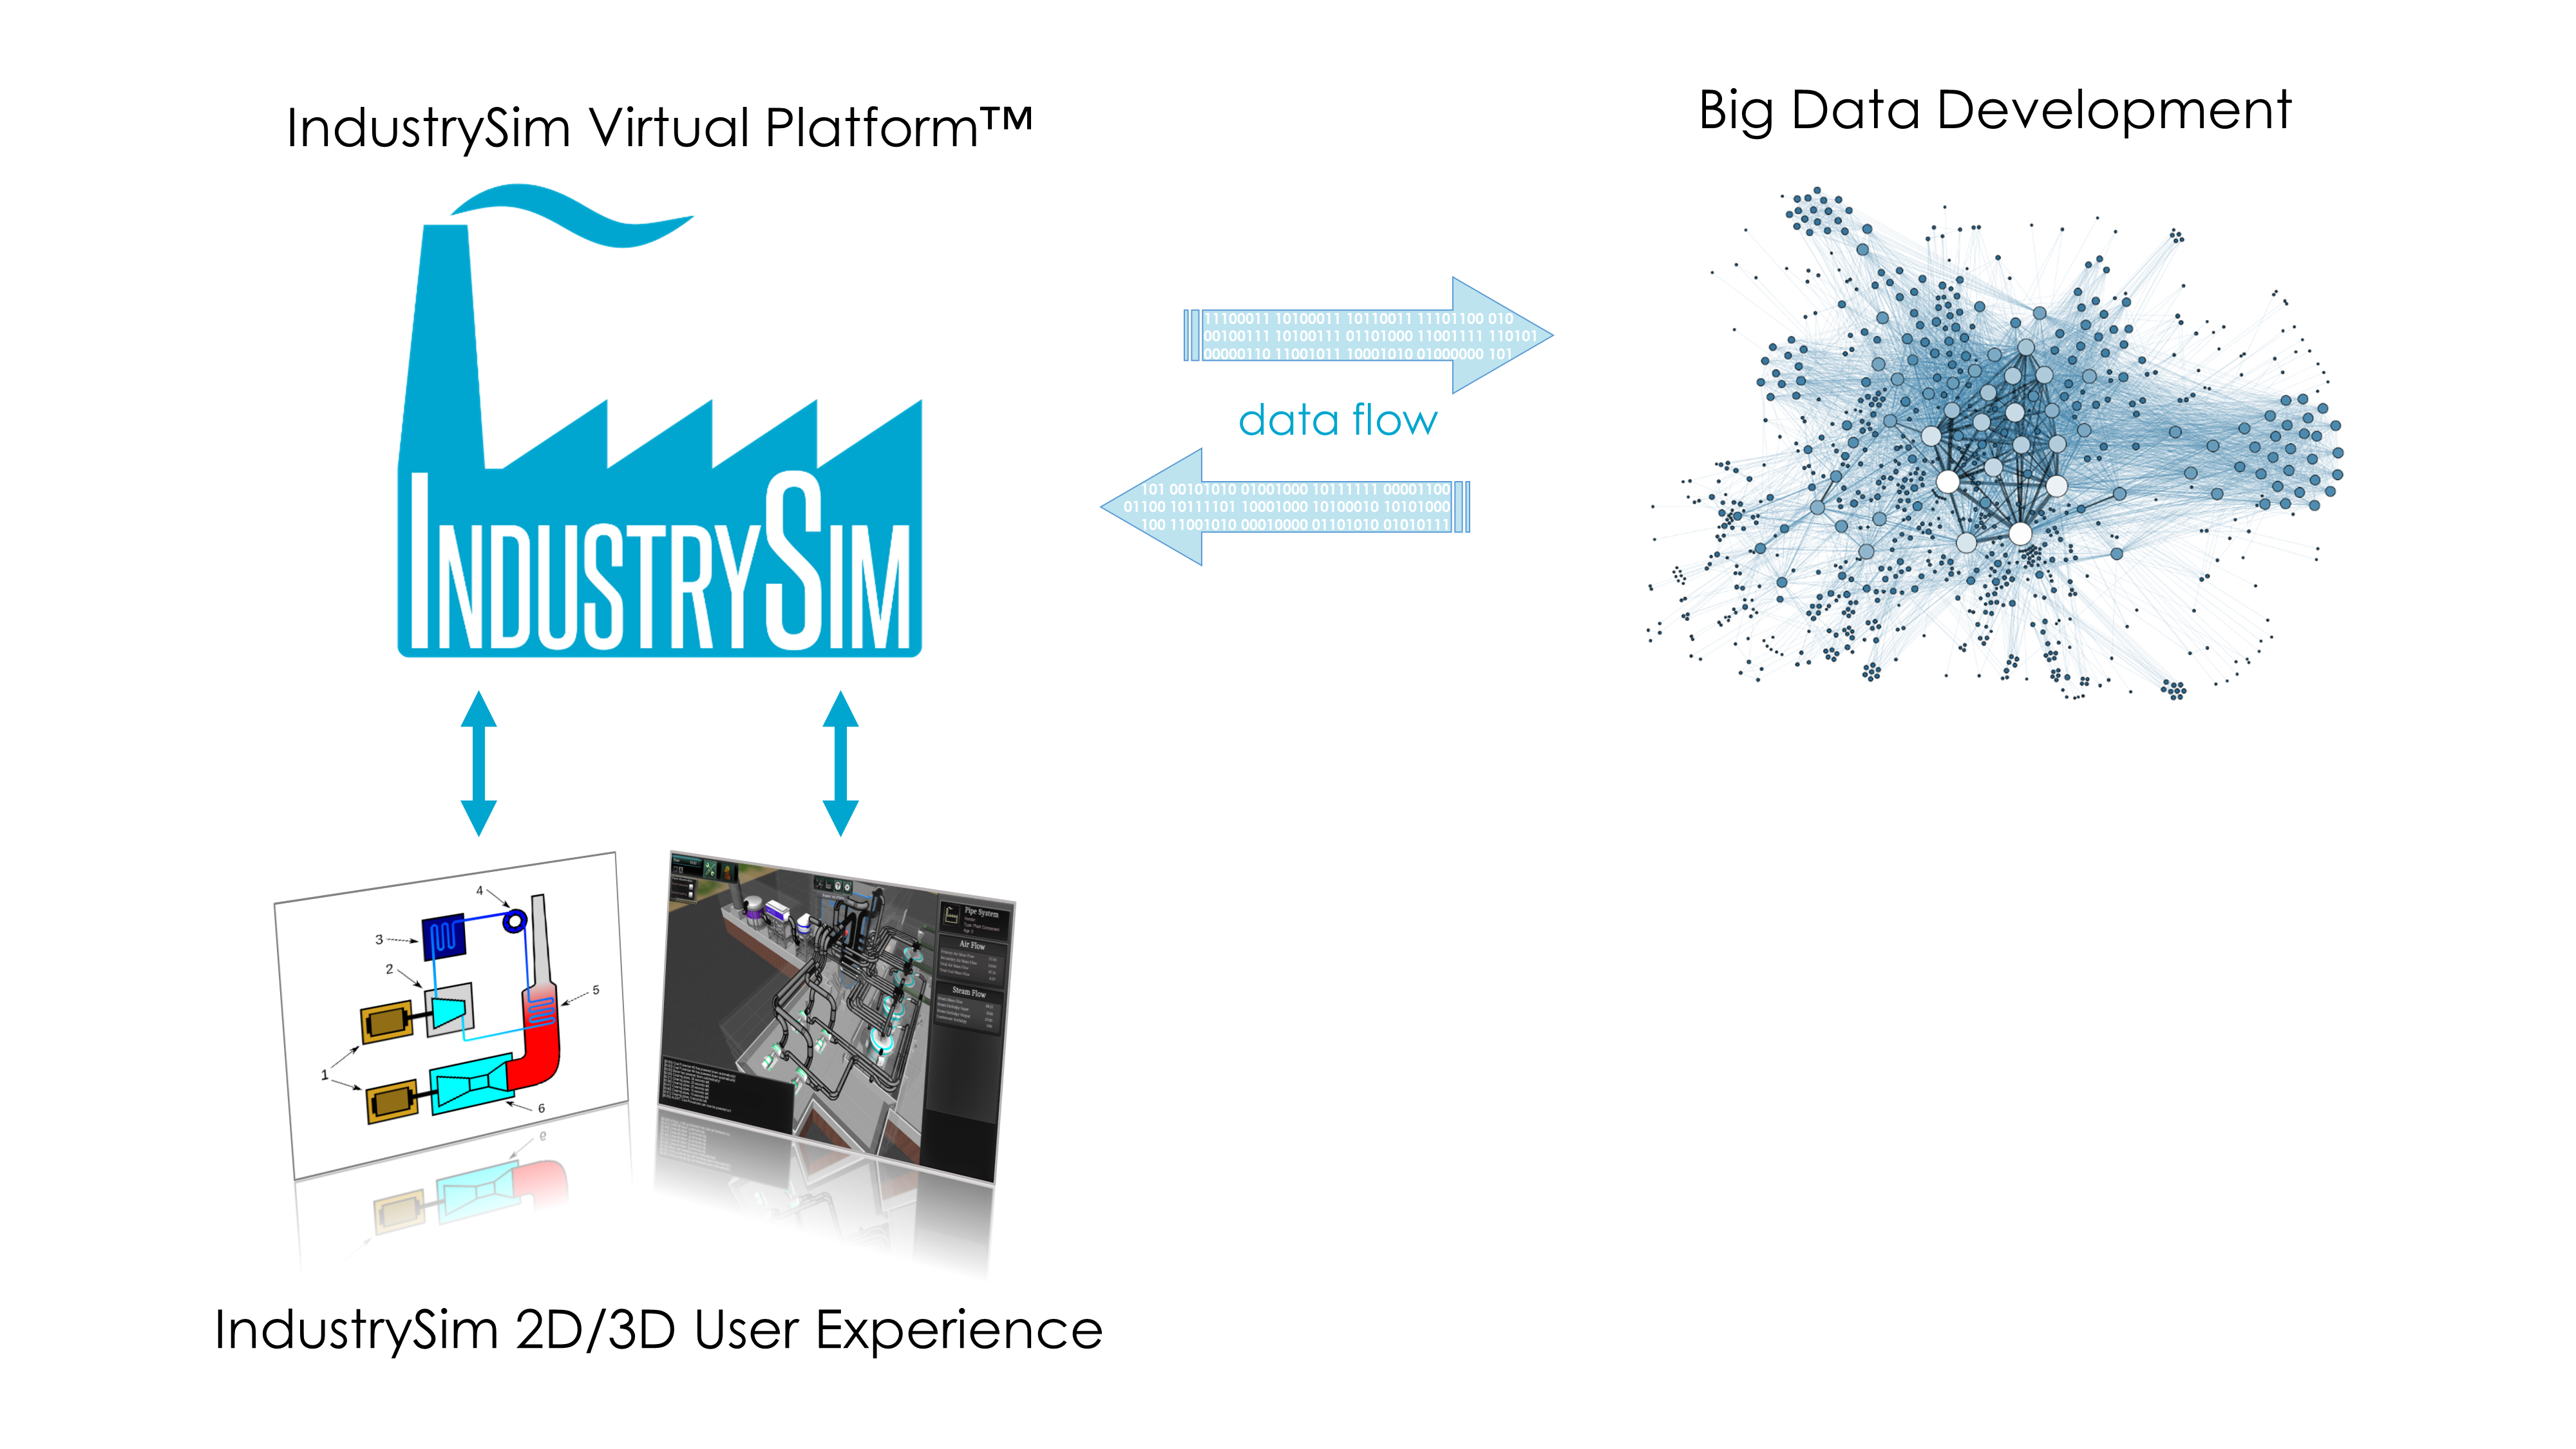 IndustrySim Virtual Platform and Big Data